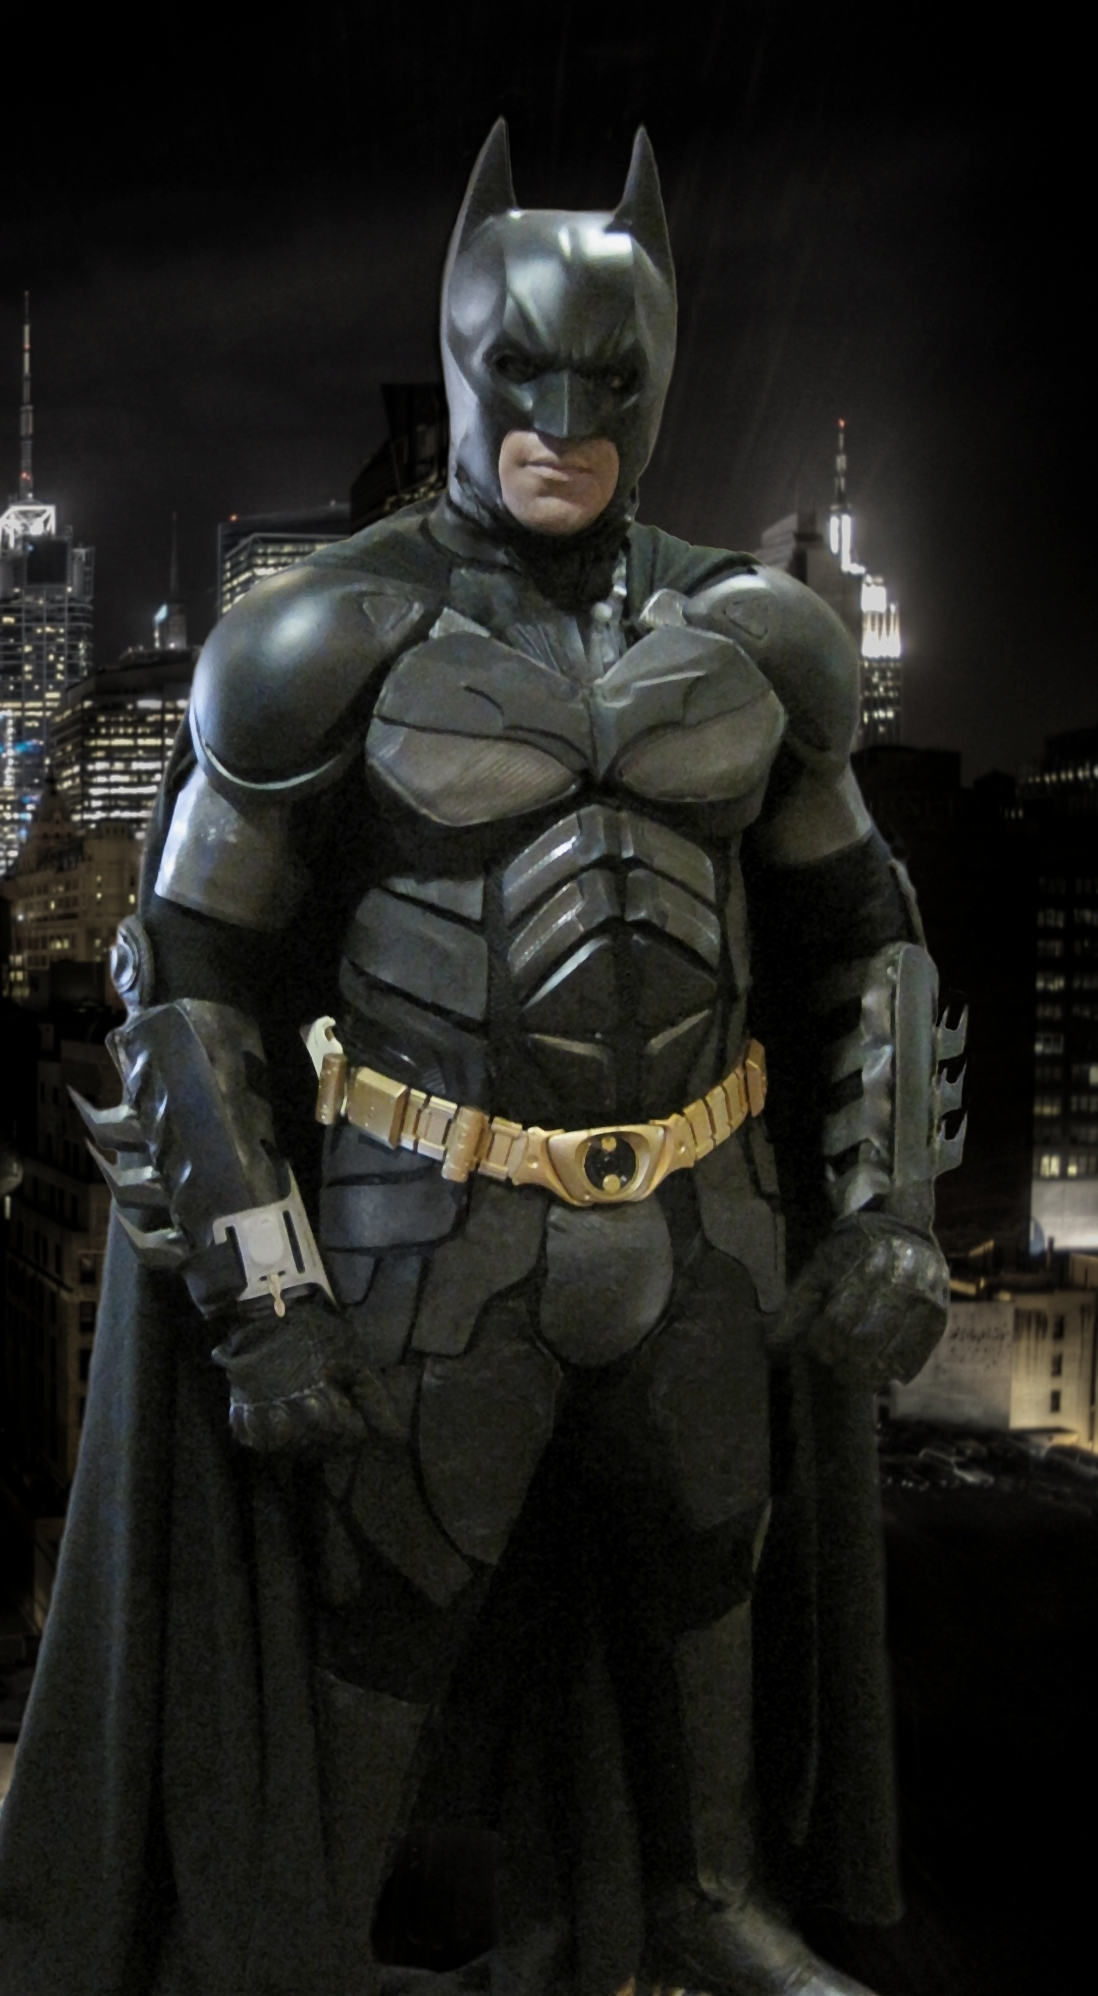 Batman p film wikipedia - Super batman movie ...